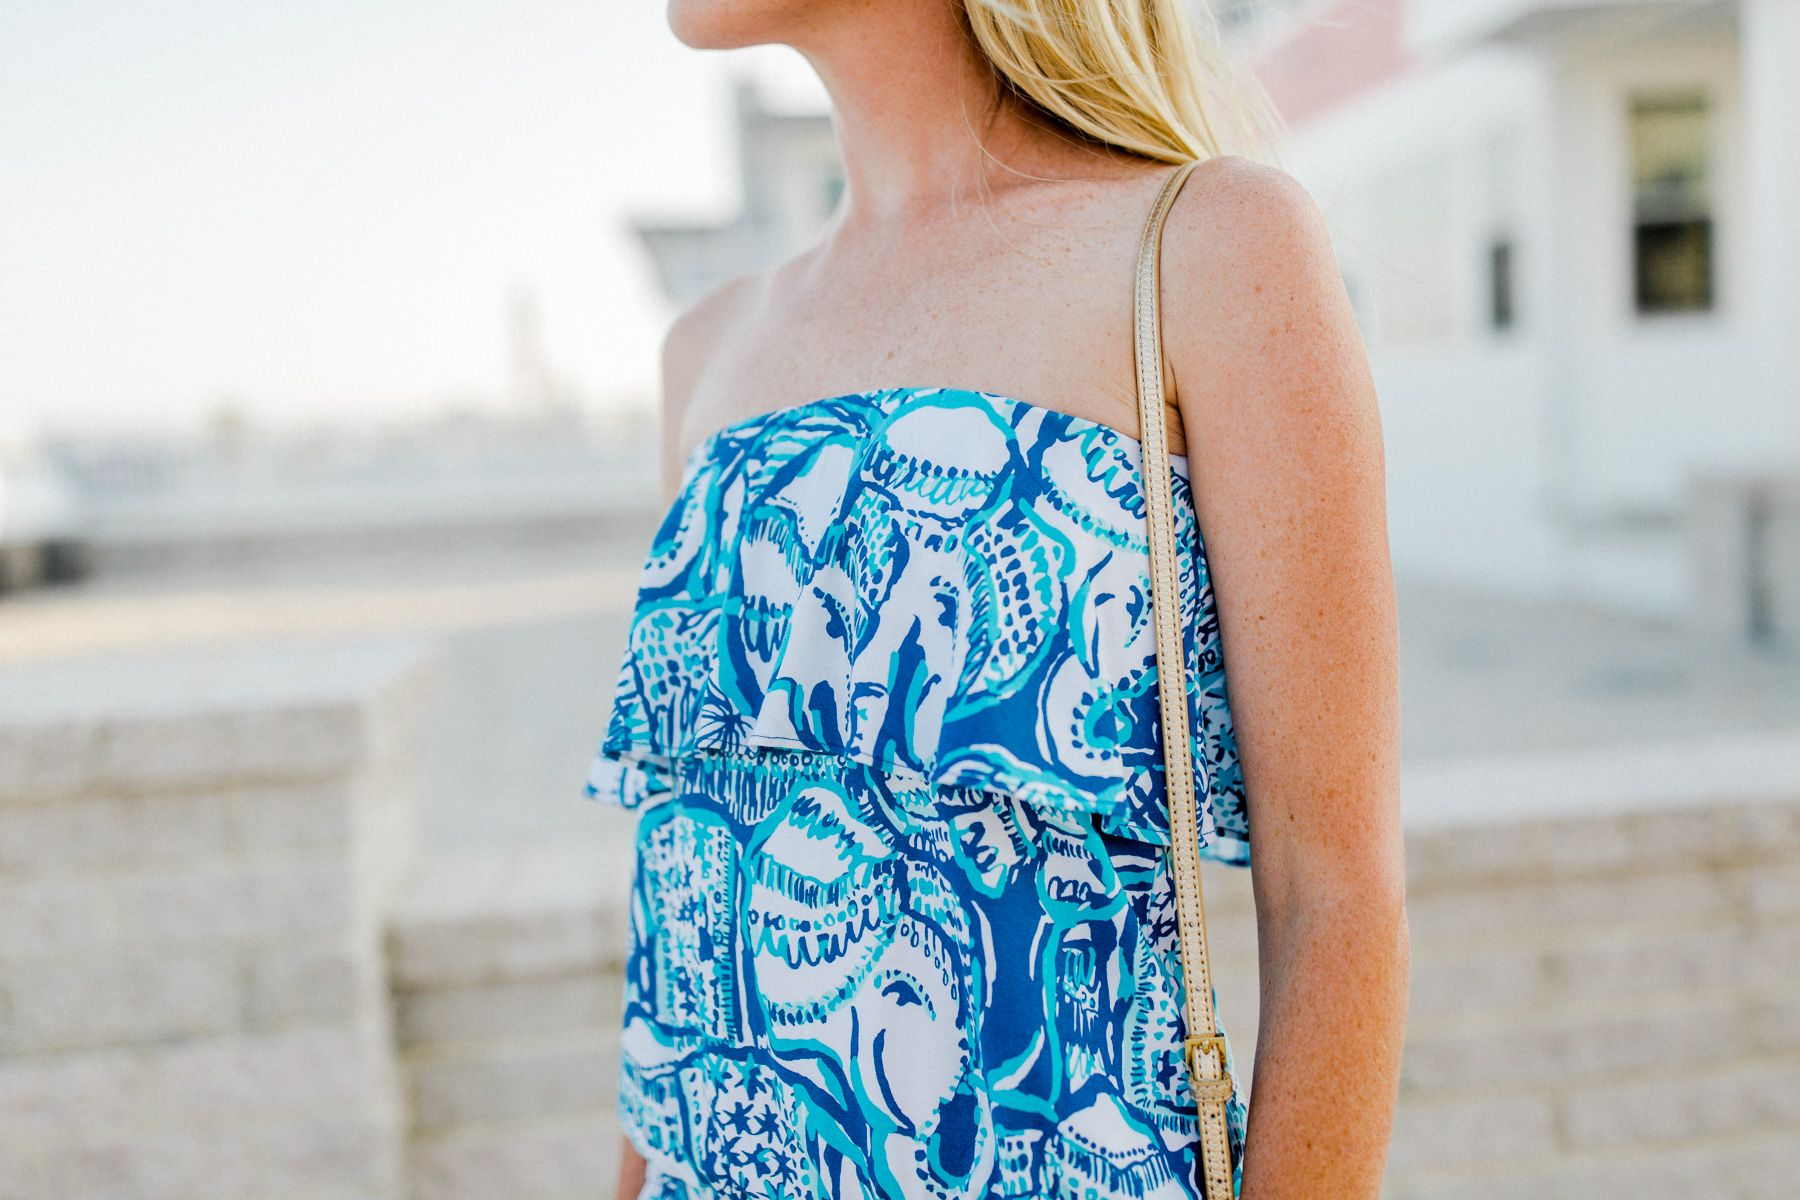 32c37f6869a872 Let's Talk Jumpsuits - Kelly in the City Lilly Pulitzer After Party Sale  $200 Giveaway! #lilly #lillypulitzer #buymelilly #summerinlilly#lifeinlilly  ...